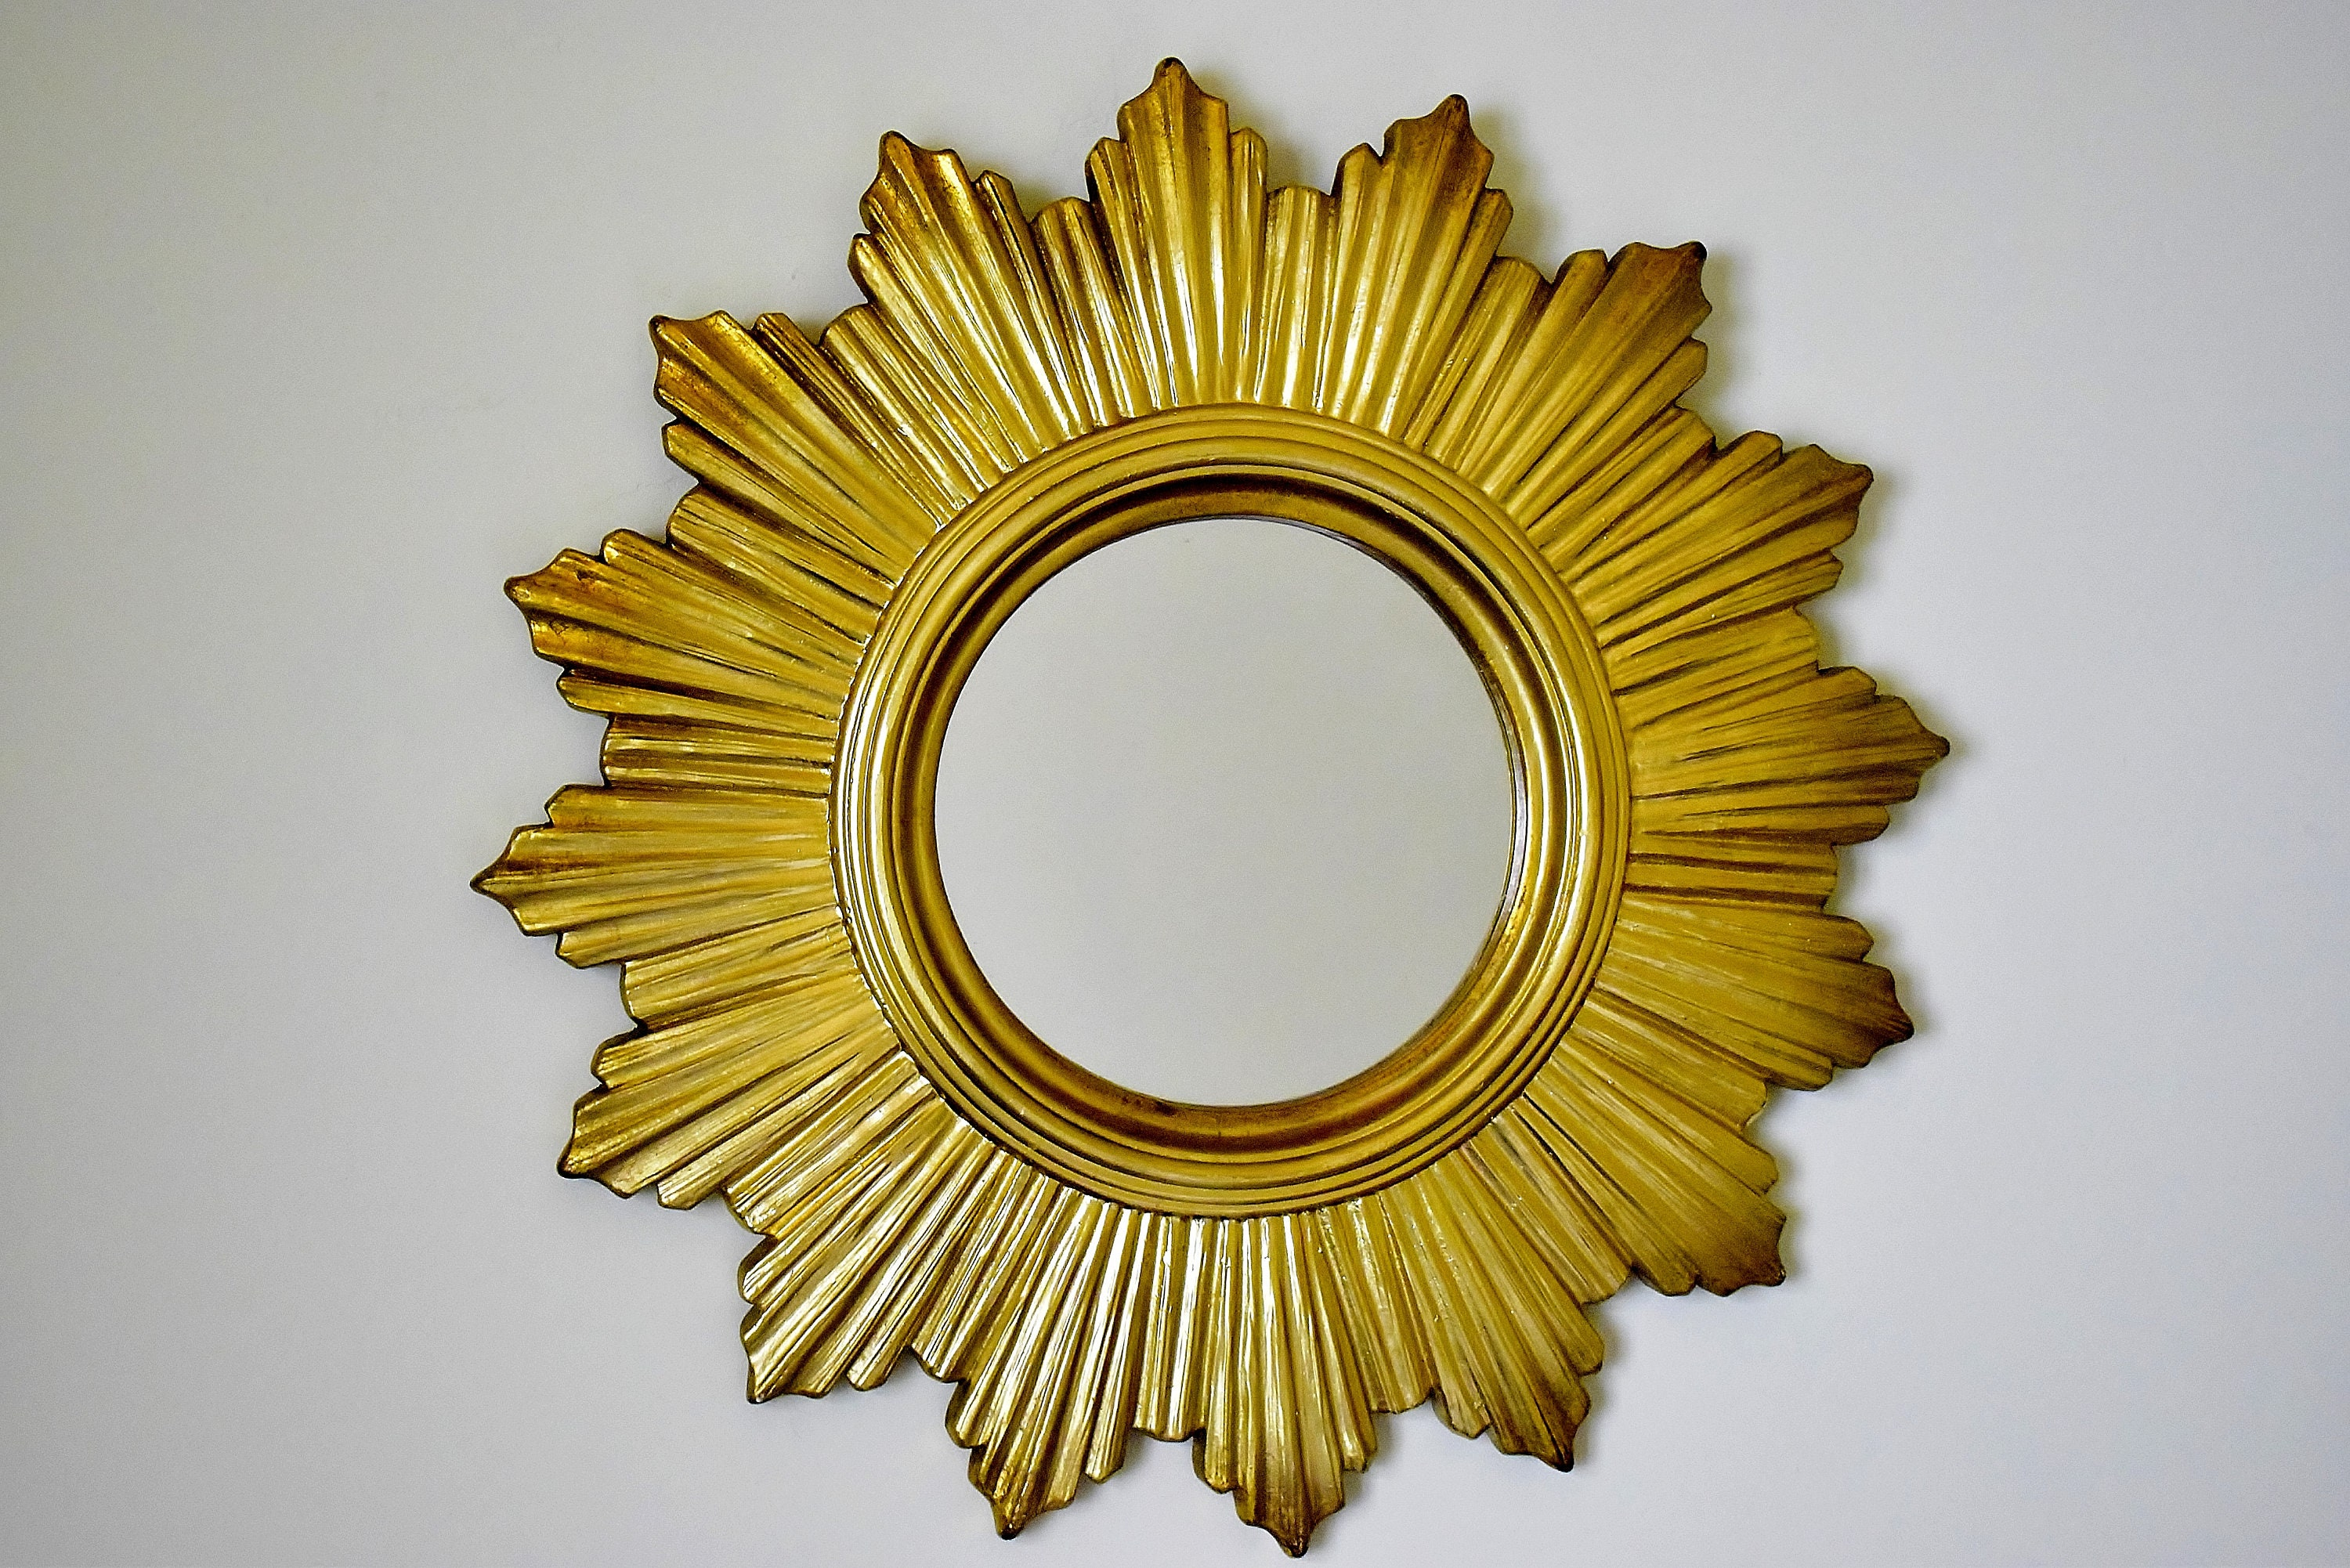 Sunburst Vintage With Mirror in Plaster. Mid Century Modern